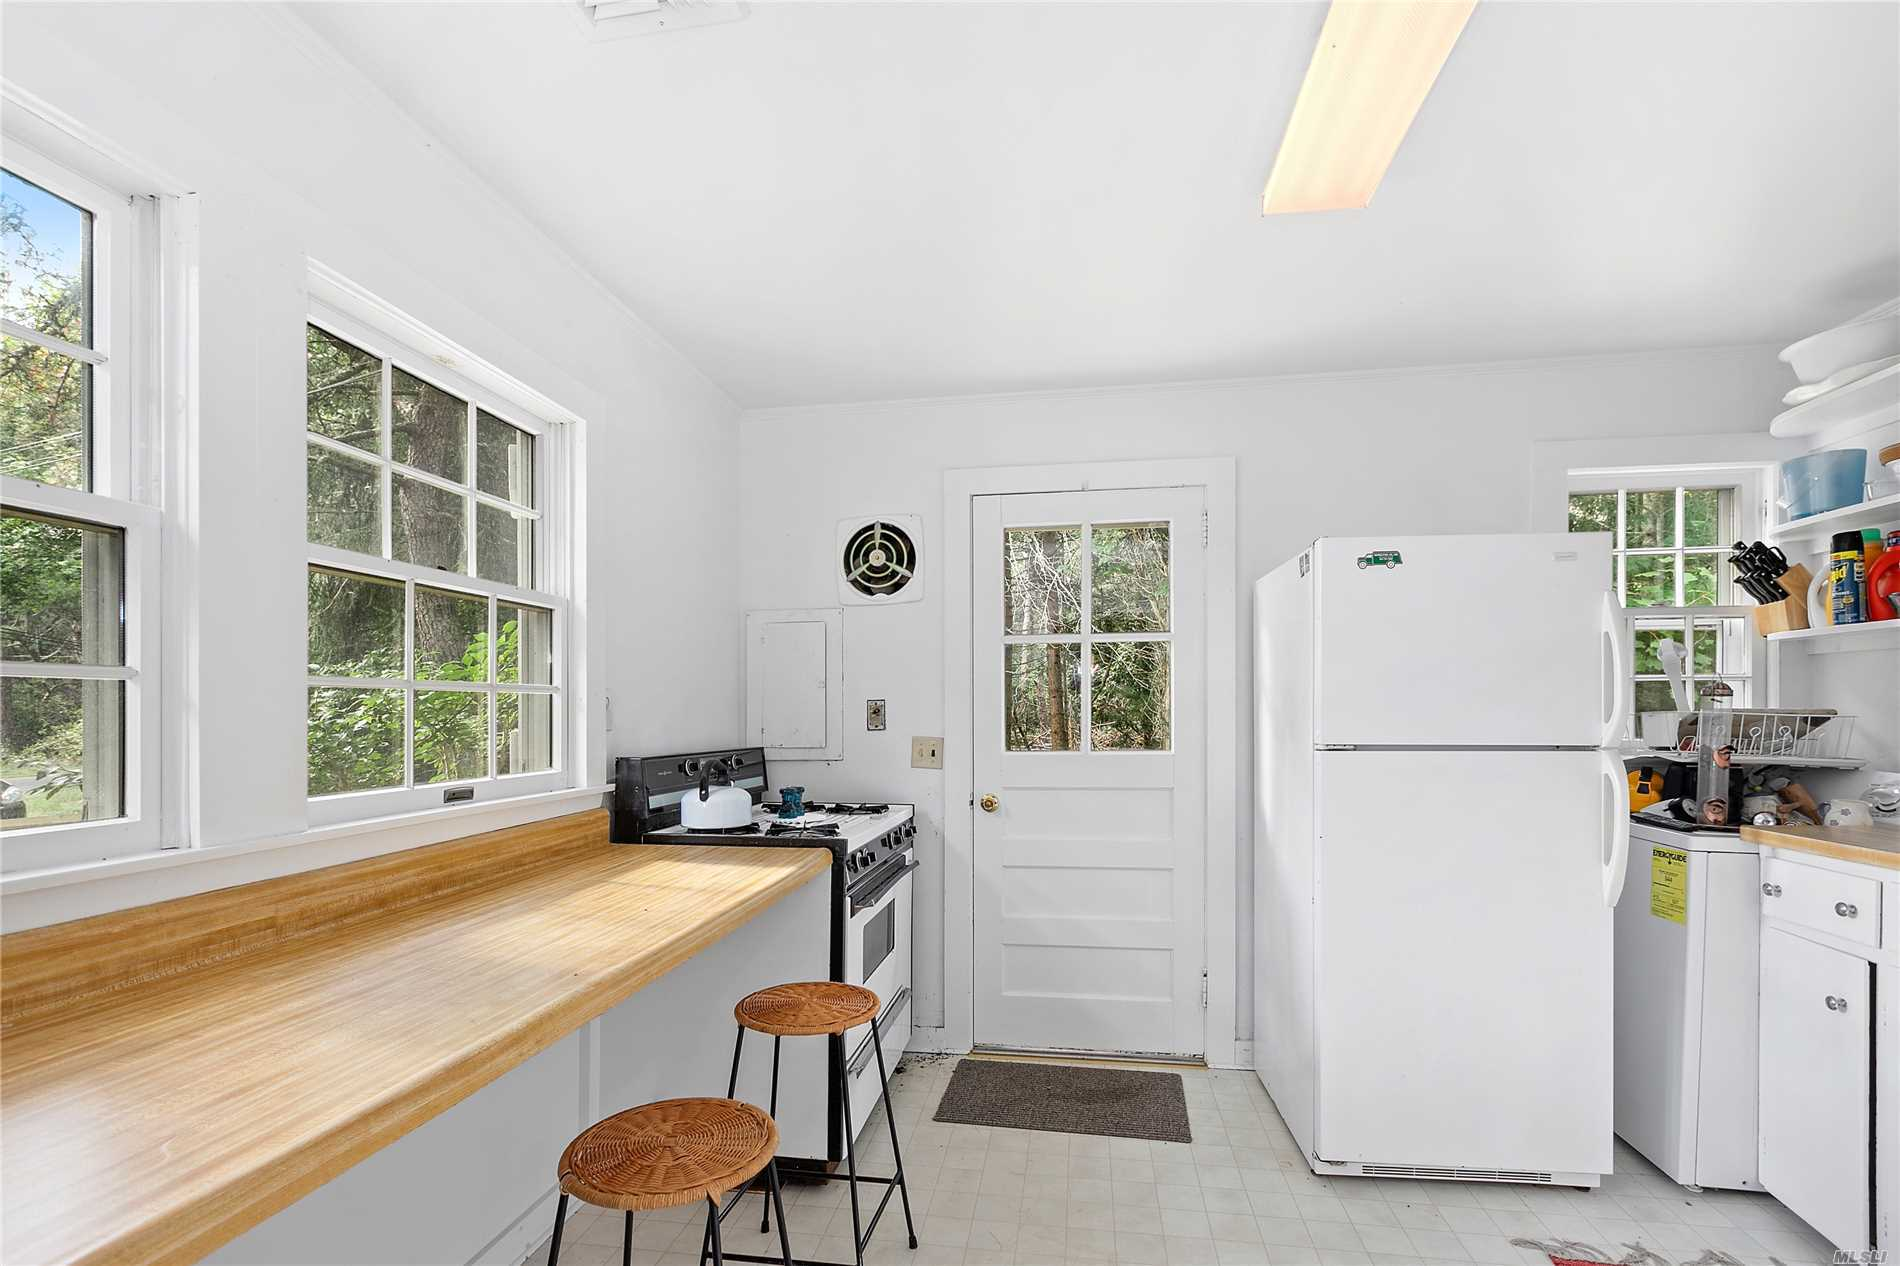 Quaint Cozy Cottage In The Village Of Quogue Offering 3 Bedrooms, 1 Bathroom Eik, Living Room And An Oversized Screened In Porch. Enjoy The Quogue Village Beach.